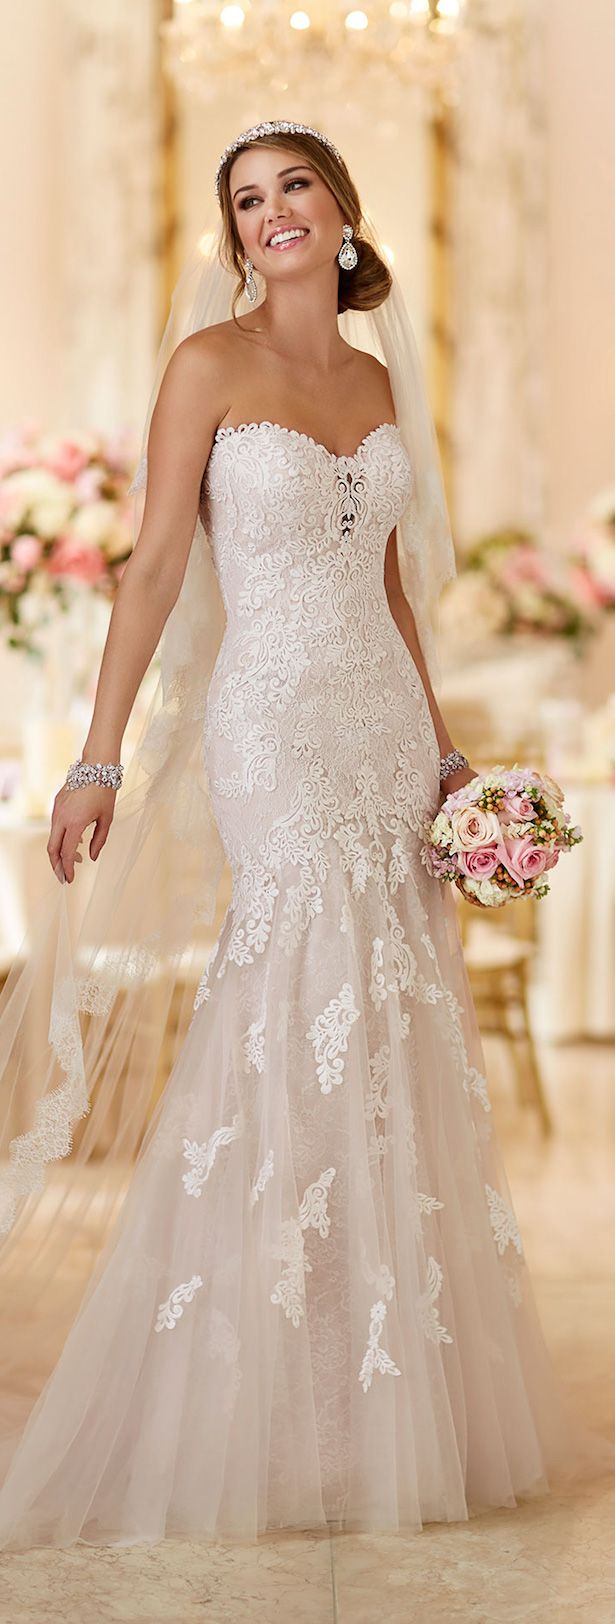 Wedding Stella York Wedding Dresses 17 best ideas about stella york on pinterest wedding dresses nyc spring 2016 formal dressesspring